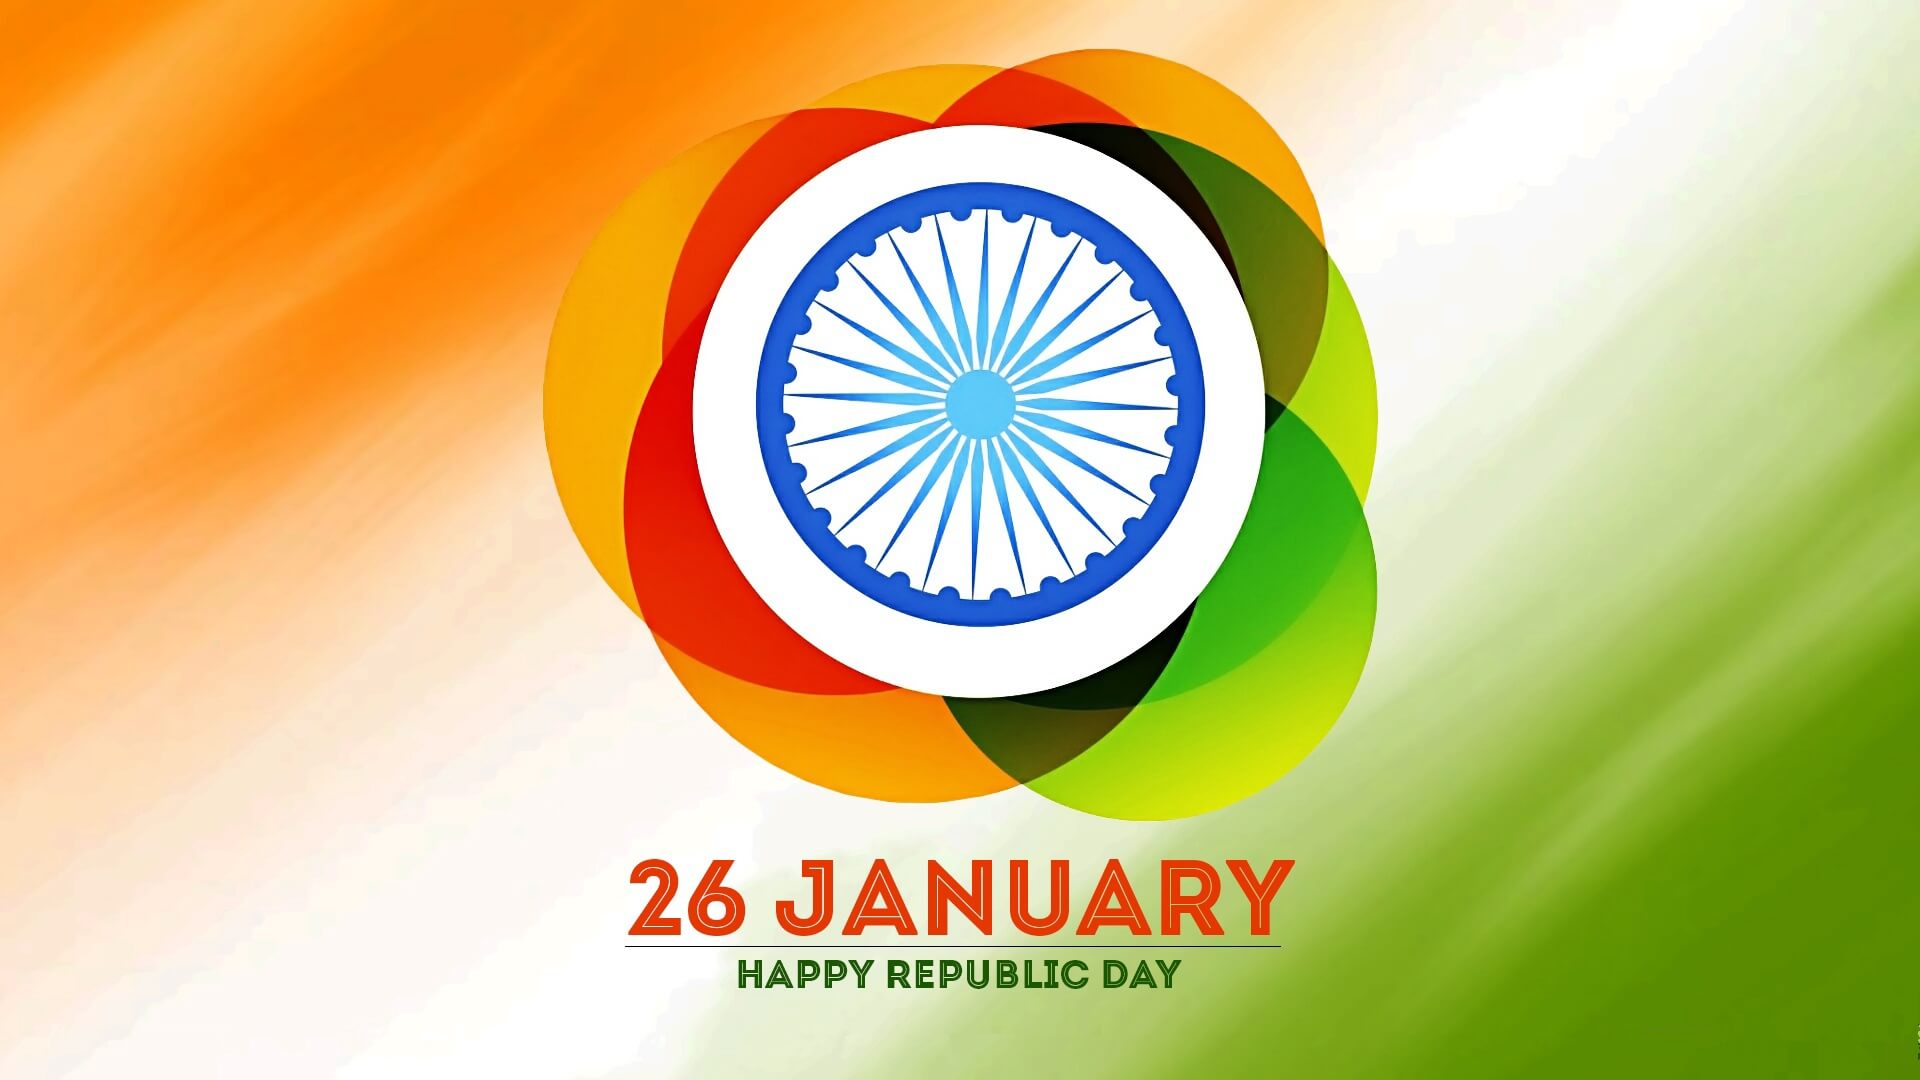 Pics of Happy Republic Day